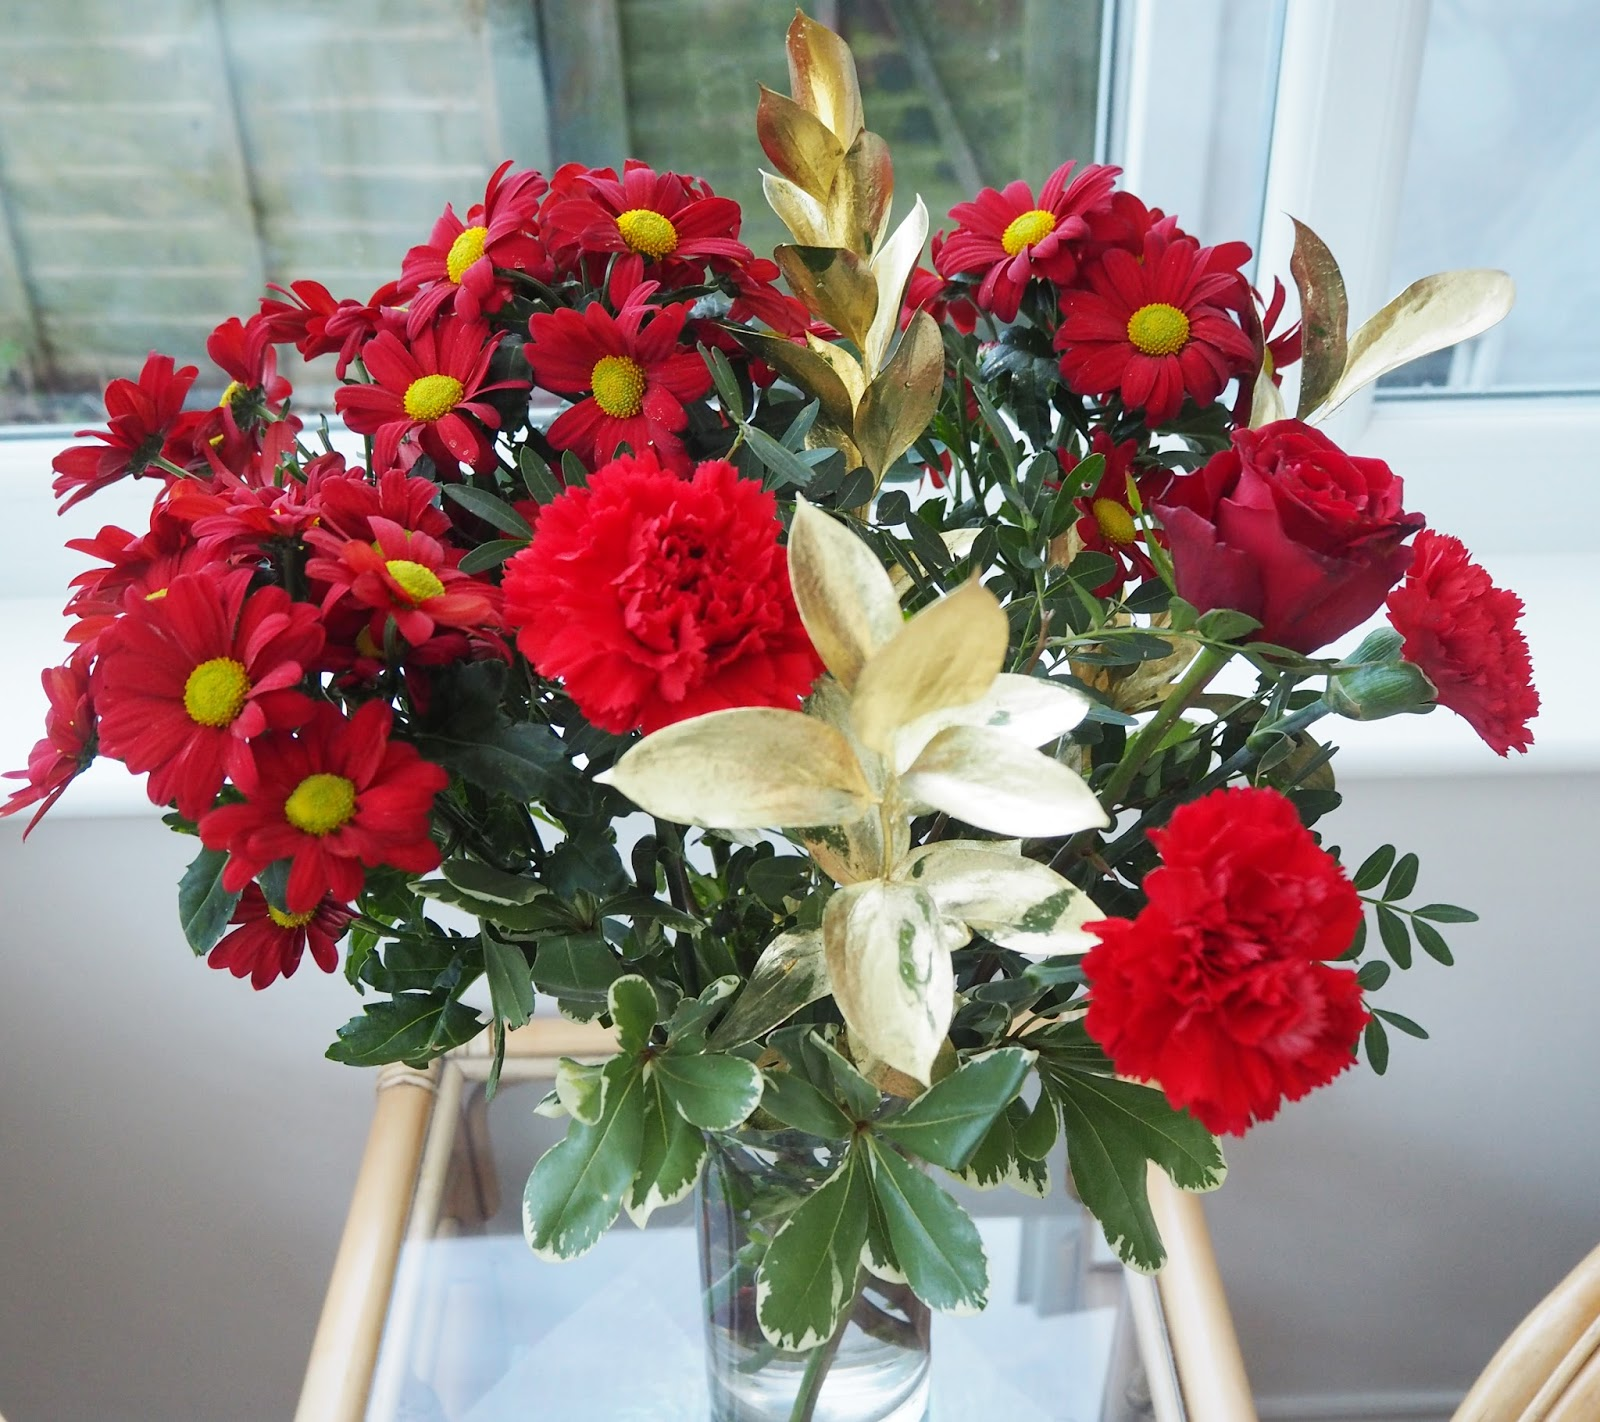 Christmas Bouquet of Flowers: Christmas Day 2015 | Katie Kirk Loves